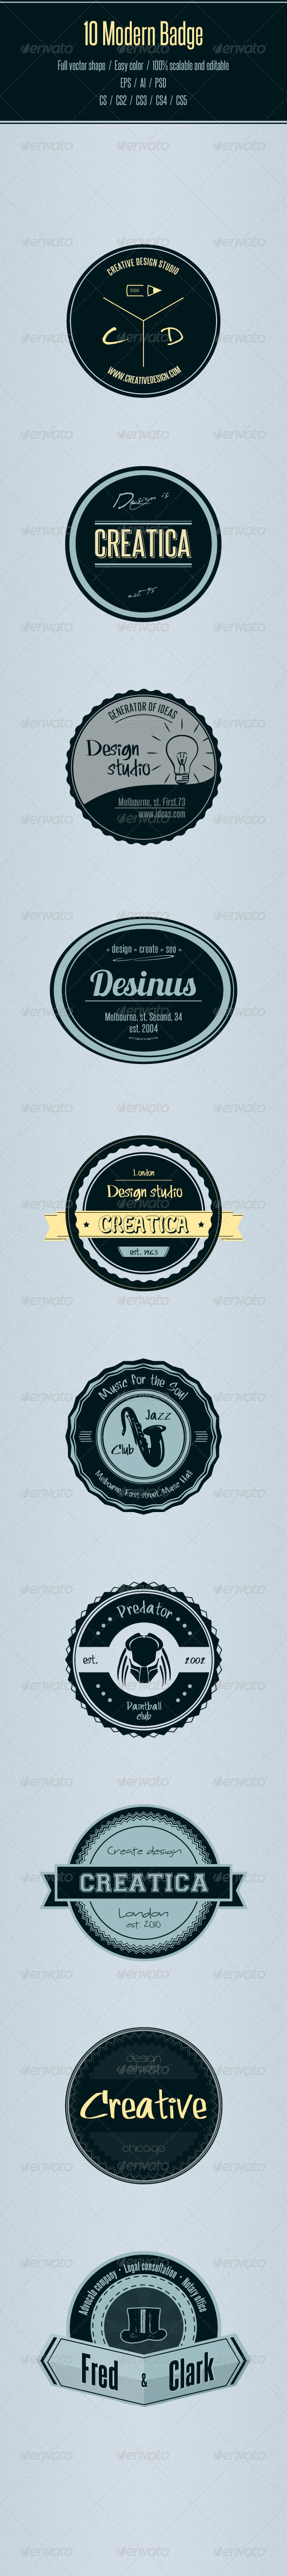 GraphicRiver 10 Modern Badge 2266965